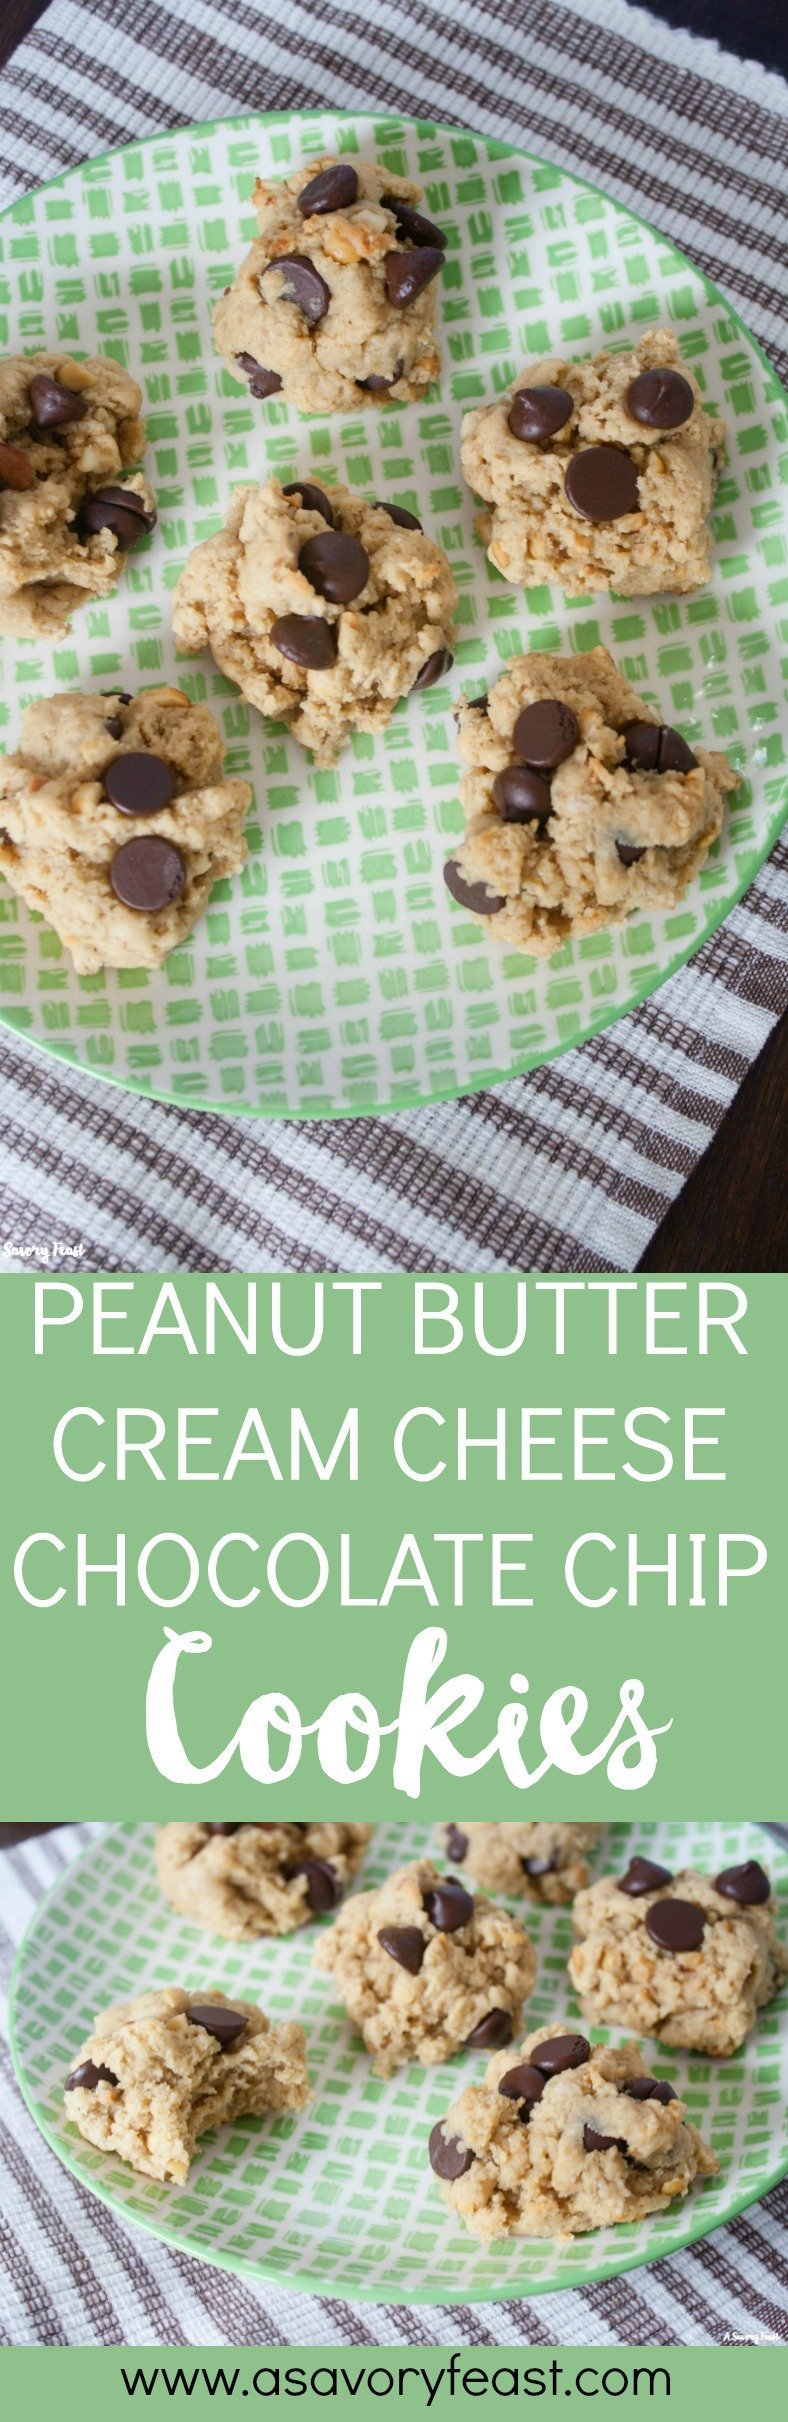 Craving a sweet afternoon snack? Make these Peanut Butter Cream Cheese Chocolate Chip Cookies! Made with cream cheese instead of butter, these cookies have an amazing texture, plus they combine the flavors of peanut butter and chocolate into one yummy cookie.